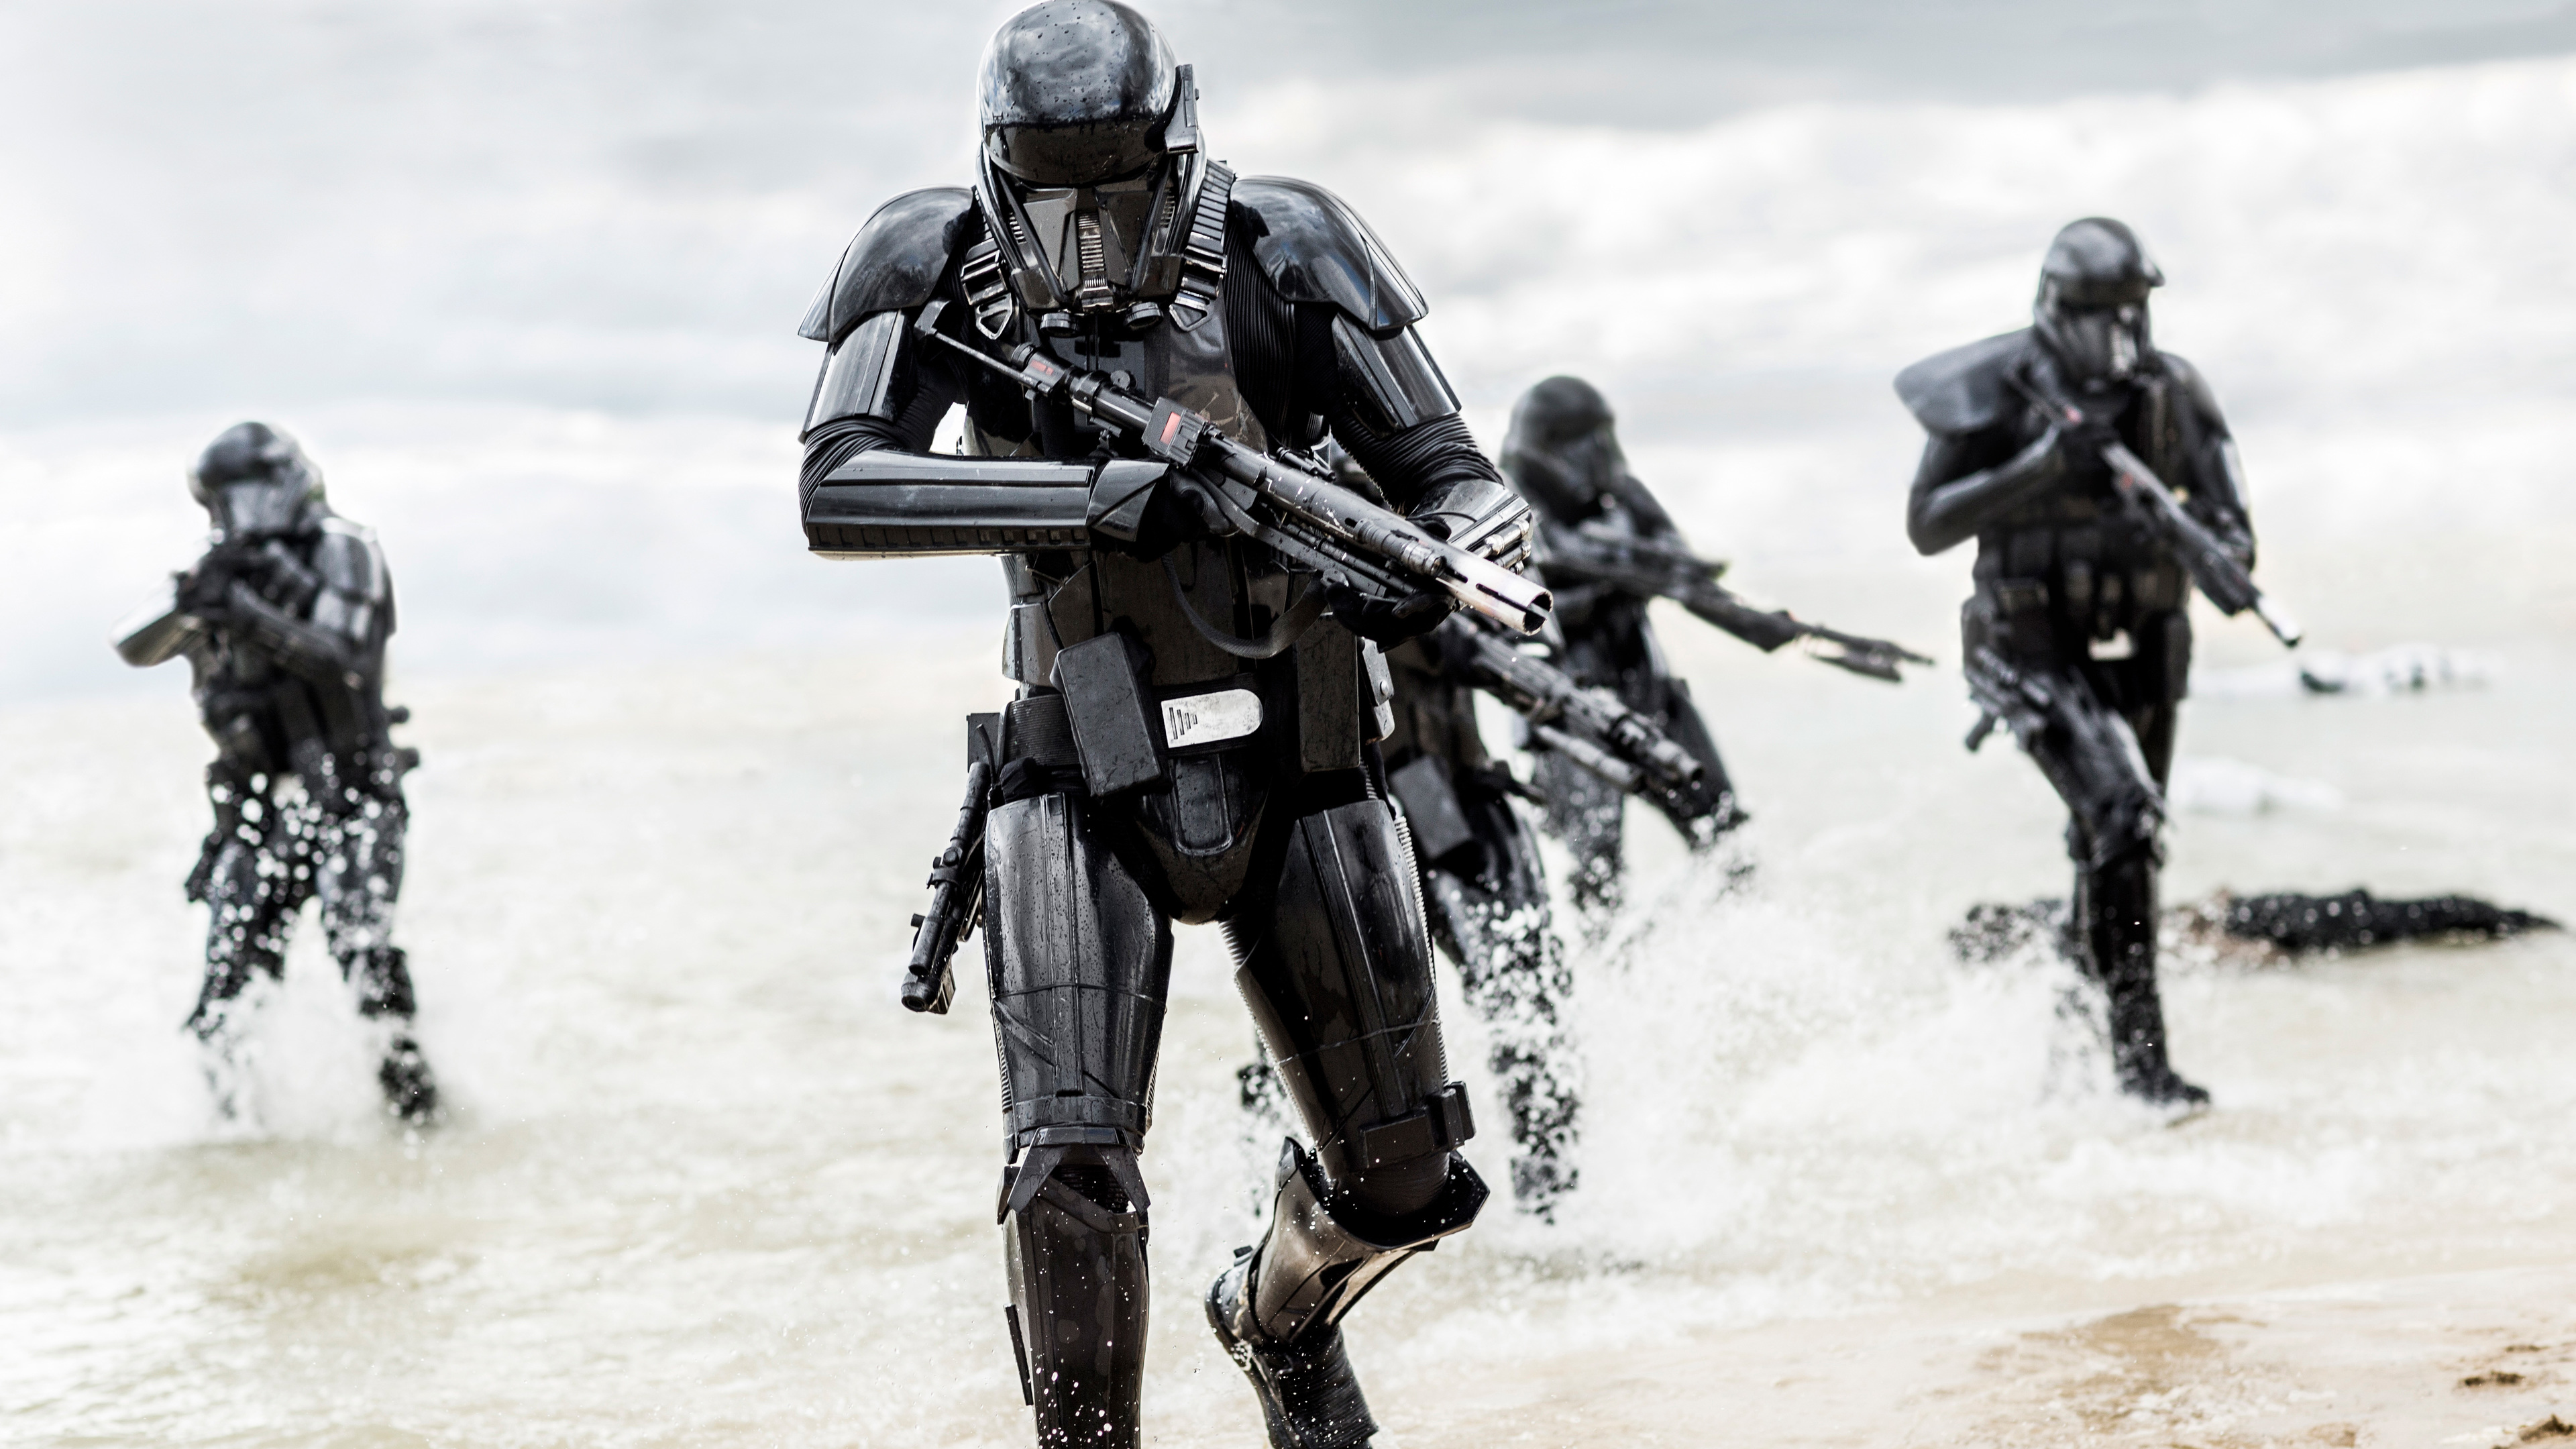 rogue one a star wars story death troopers 5k 1536401103 - Rogue One A Star Wars Story Death Troopers 5k - star wars wallpapers, rogue one a star wars story wallpapers, movies wallpapers, deathtrooper wallpapers